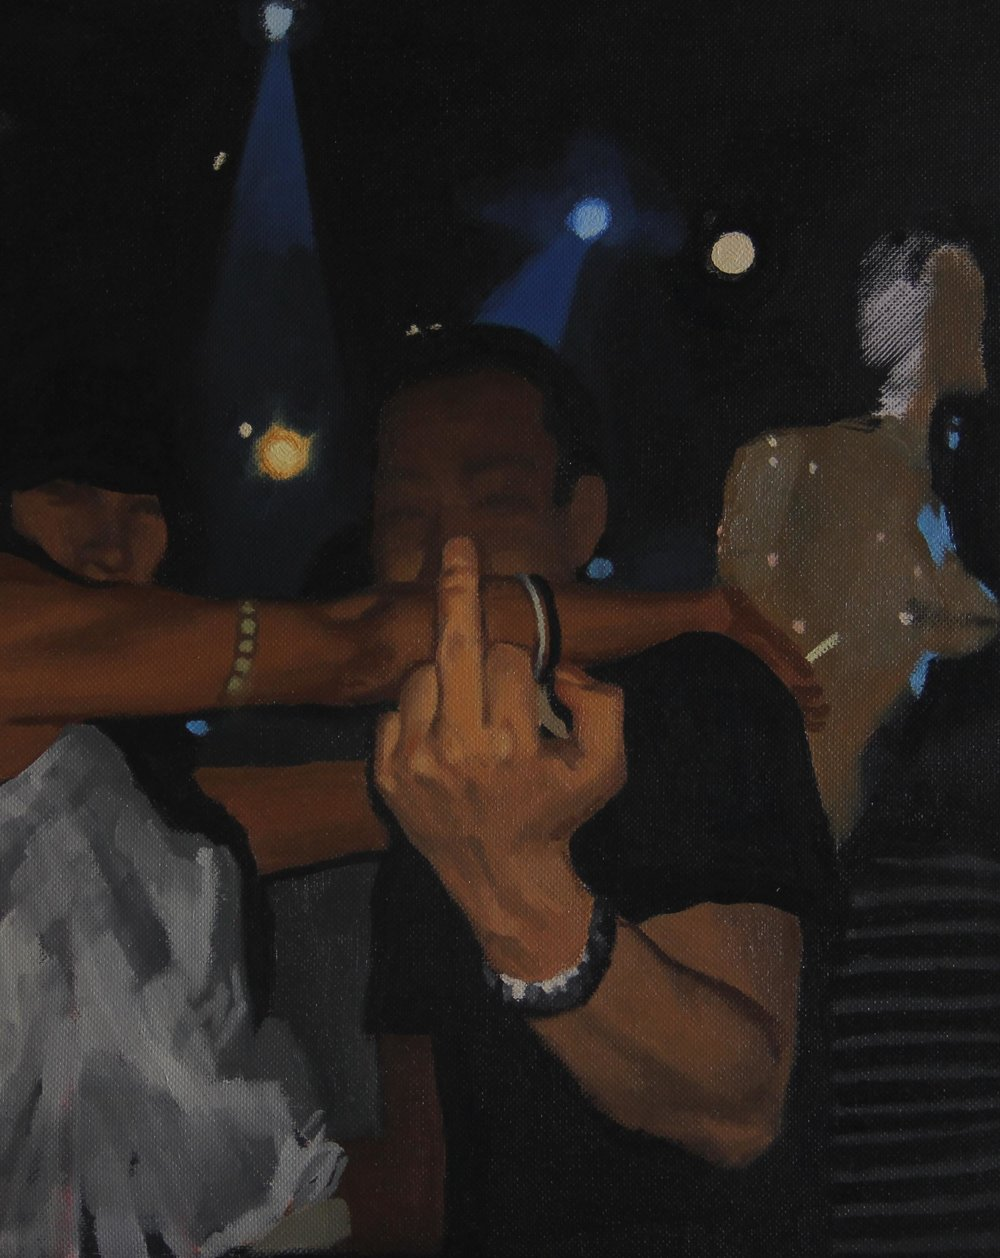 Party,2011 ,30cm x 24cm, Oil on canvas.jpg